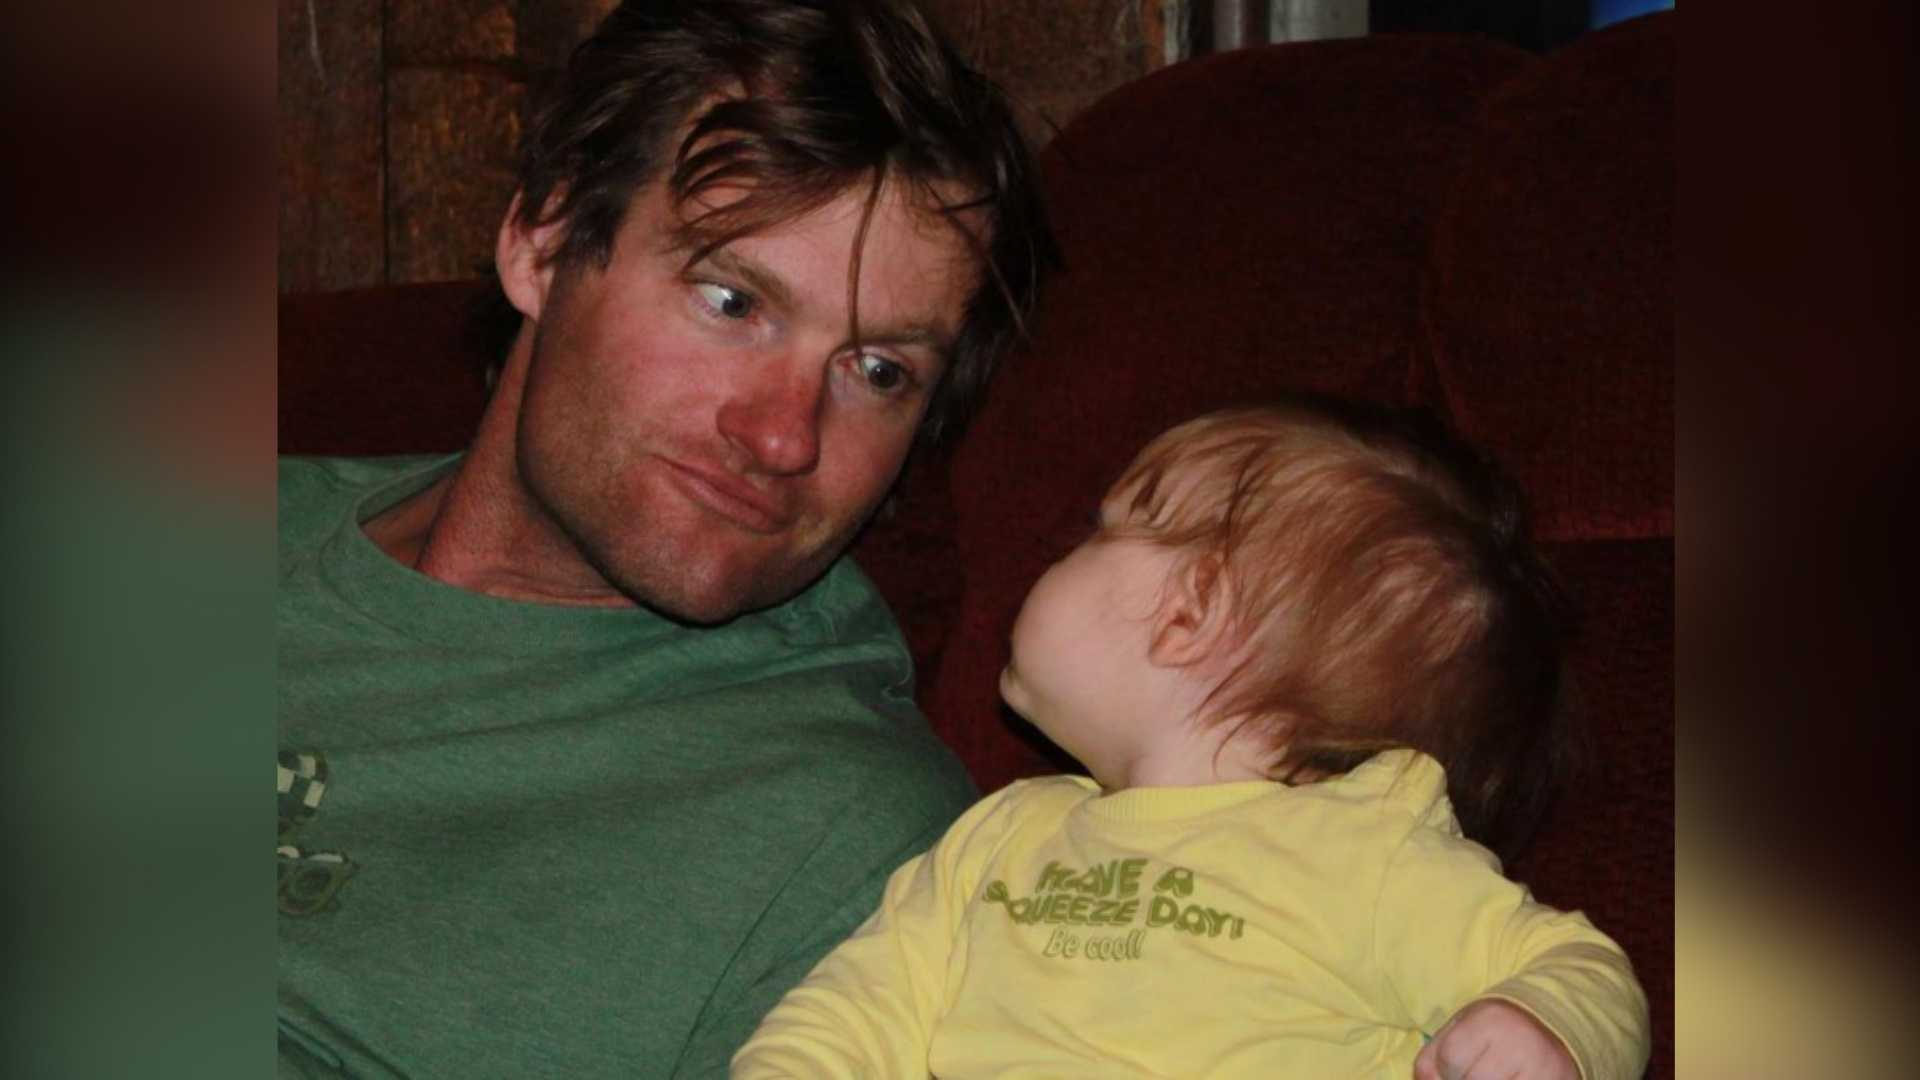 04-22-13 Friends remember skier killed in avalanche - img